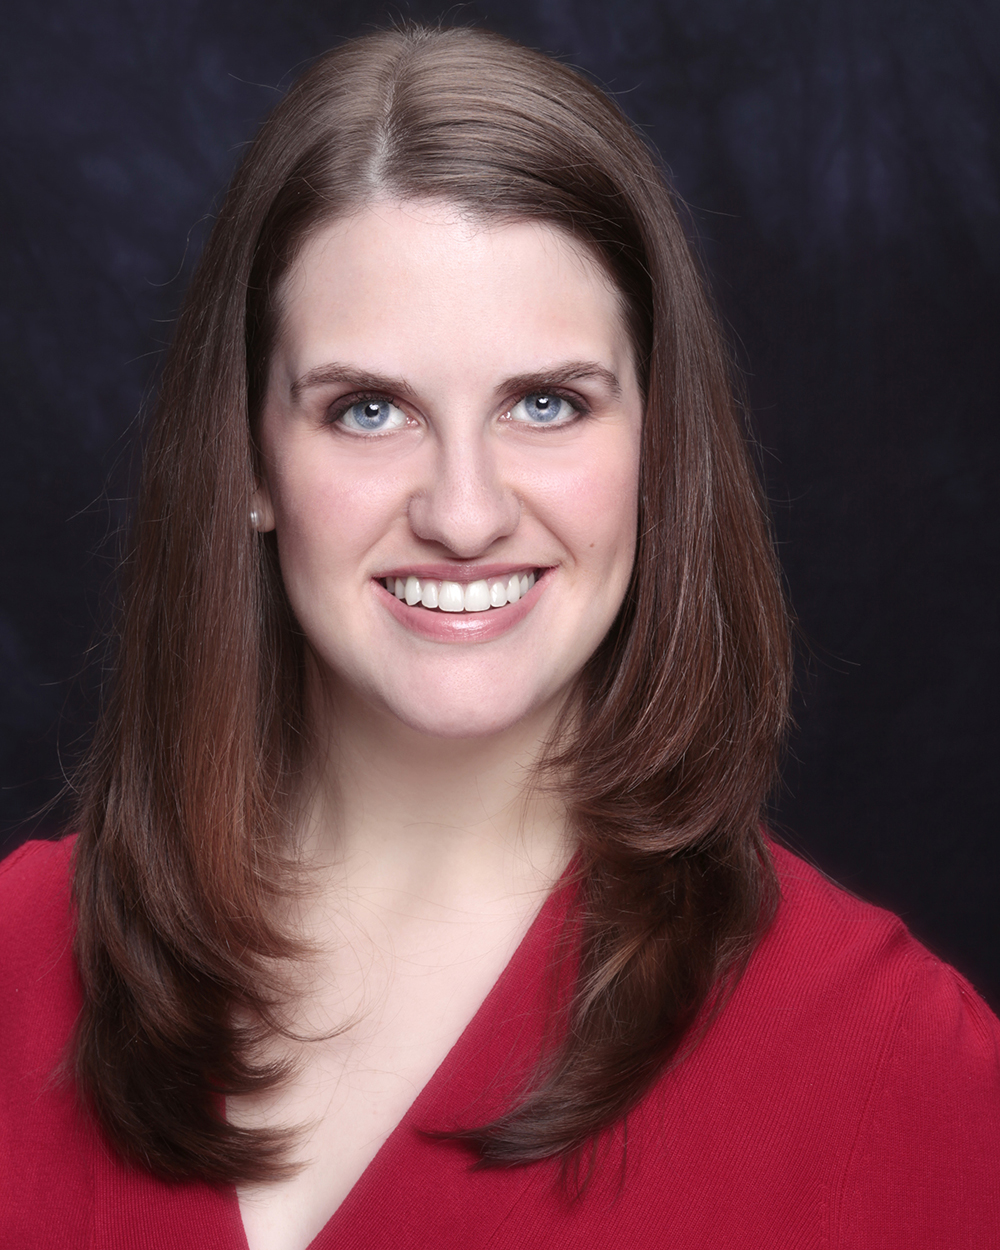 ann giancola headshot